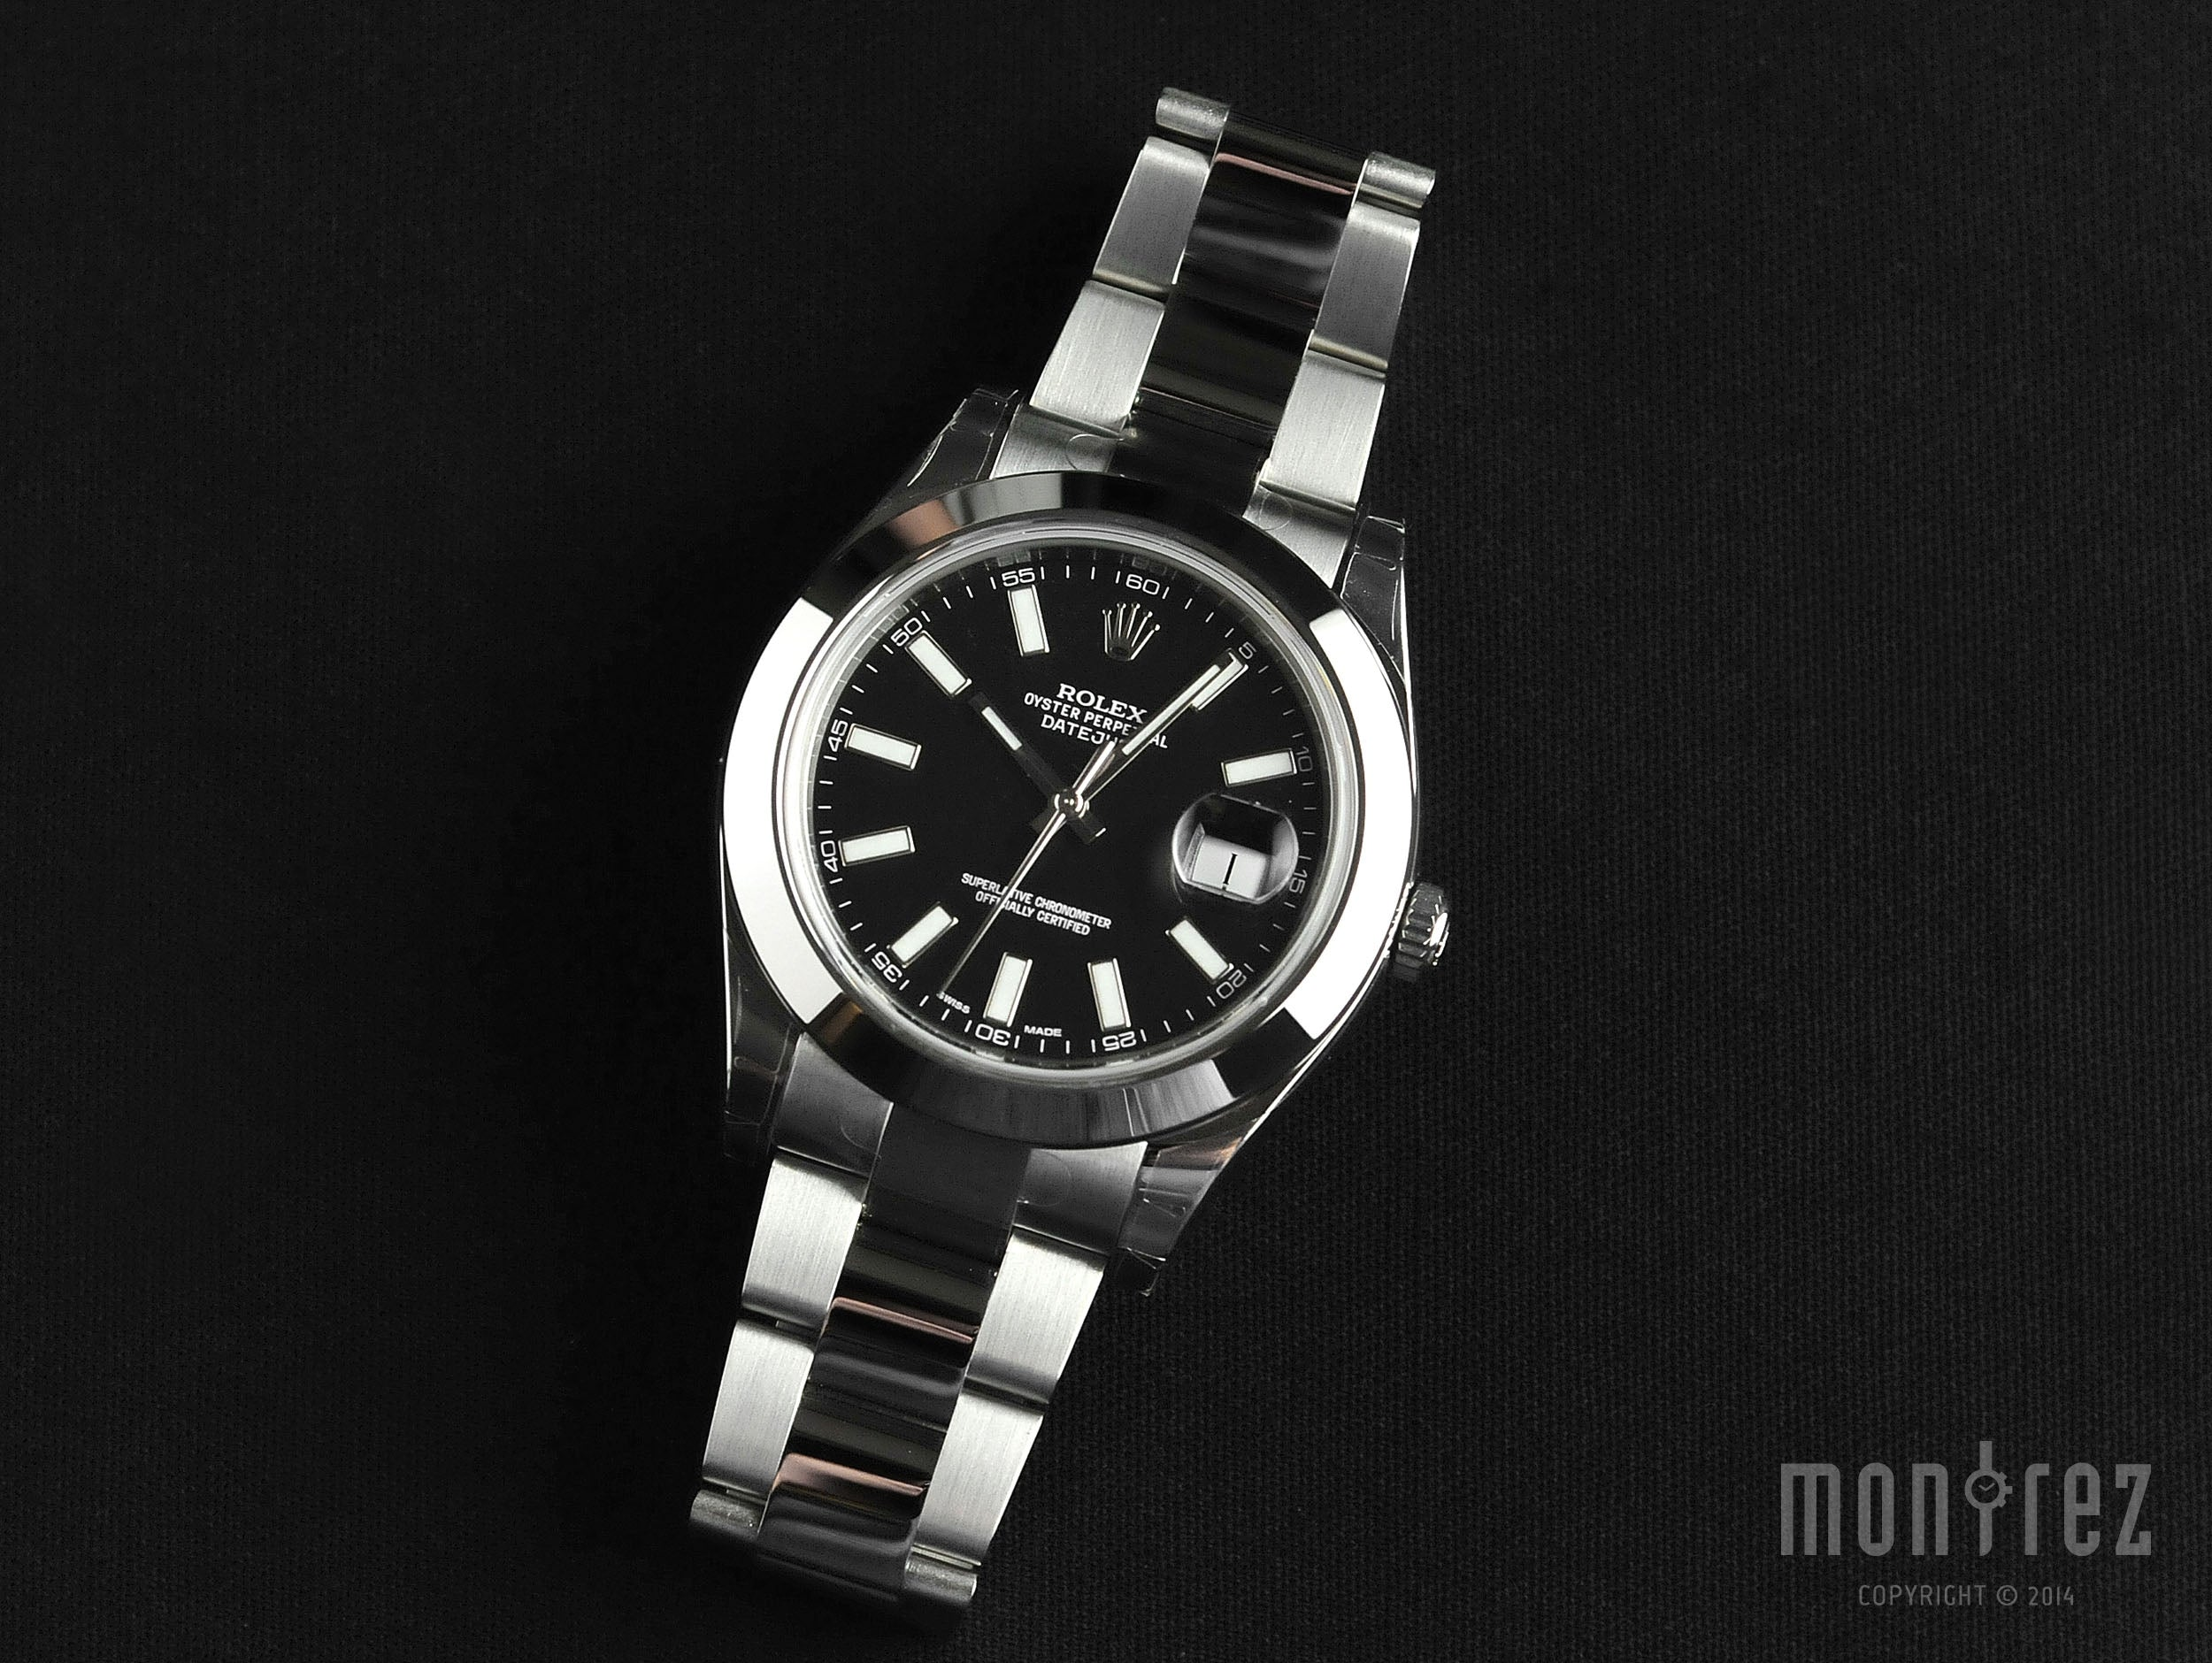 Rolex Datejust II 41mm 116300 Black Index Dial (Out of Production)